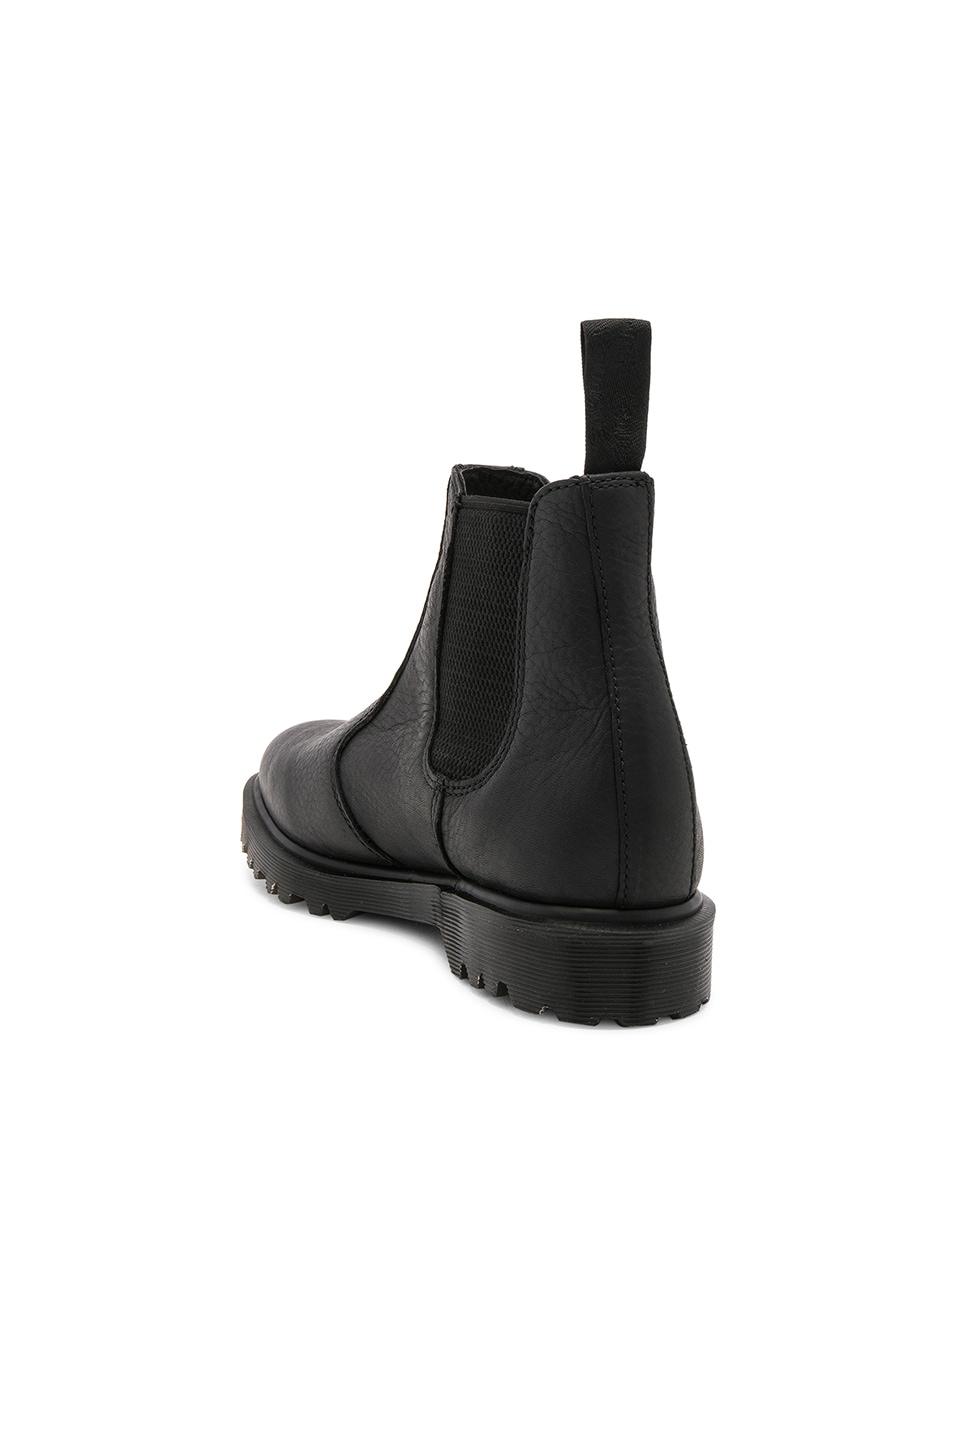 Image 3 of Dr. Martens 2976 Chelsea Leather Boots in Black